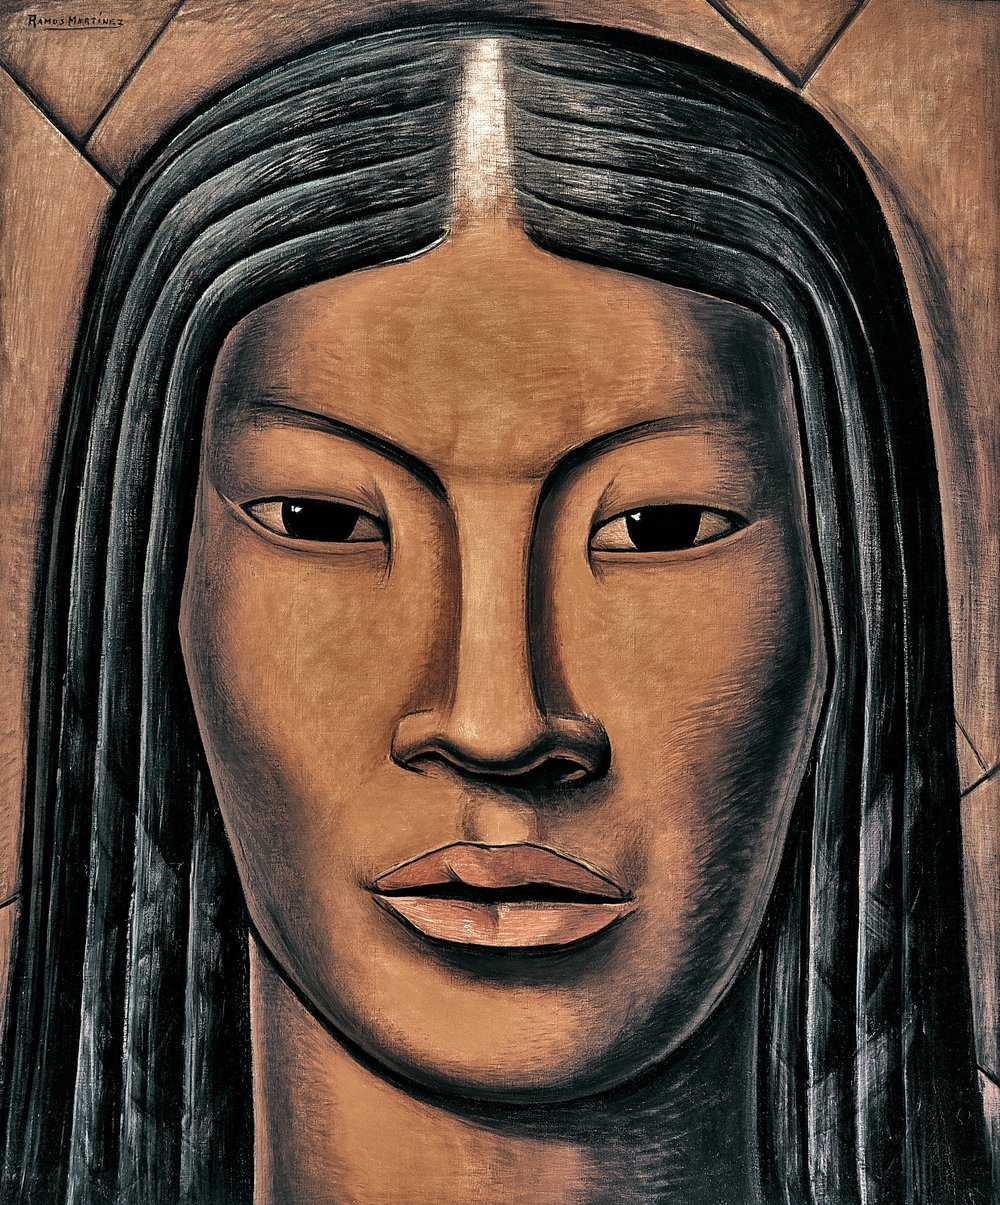 La Malinche  ca. 1930 oil on canvas / óleo sobre tela 46 x 38 inches; 116.84 x 96.5 centímetros